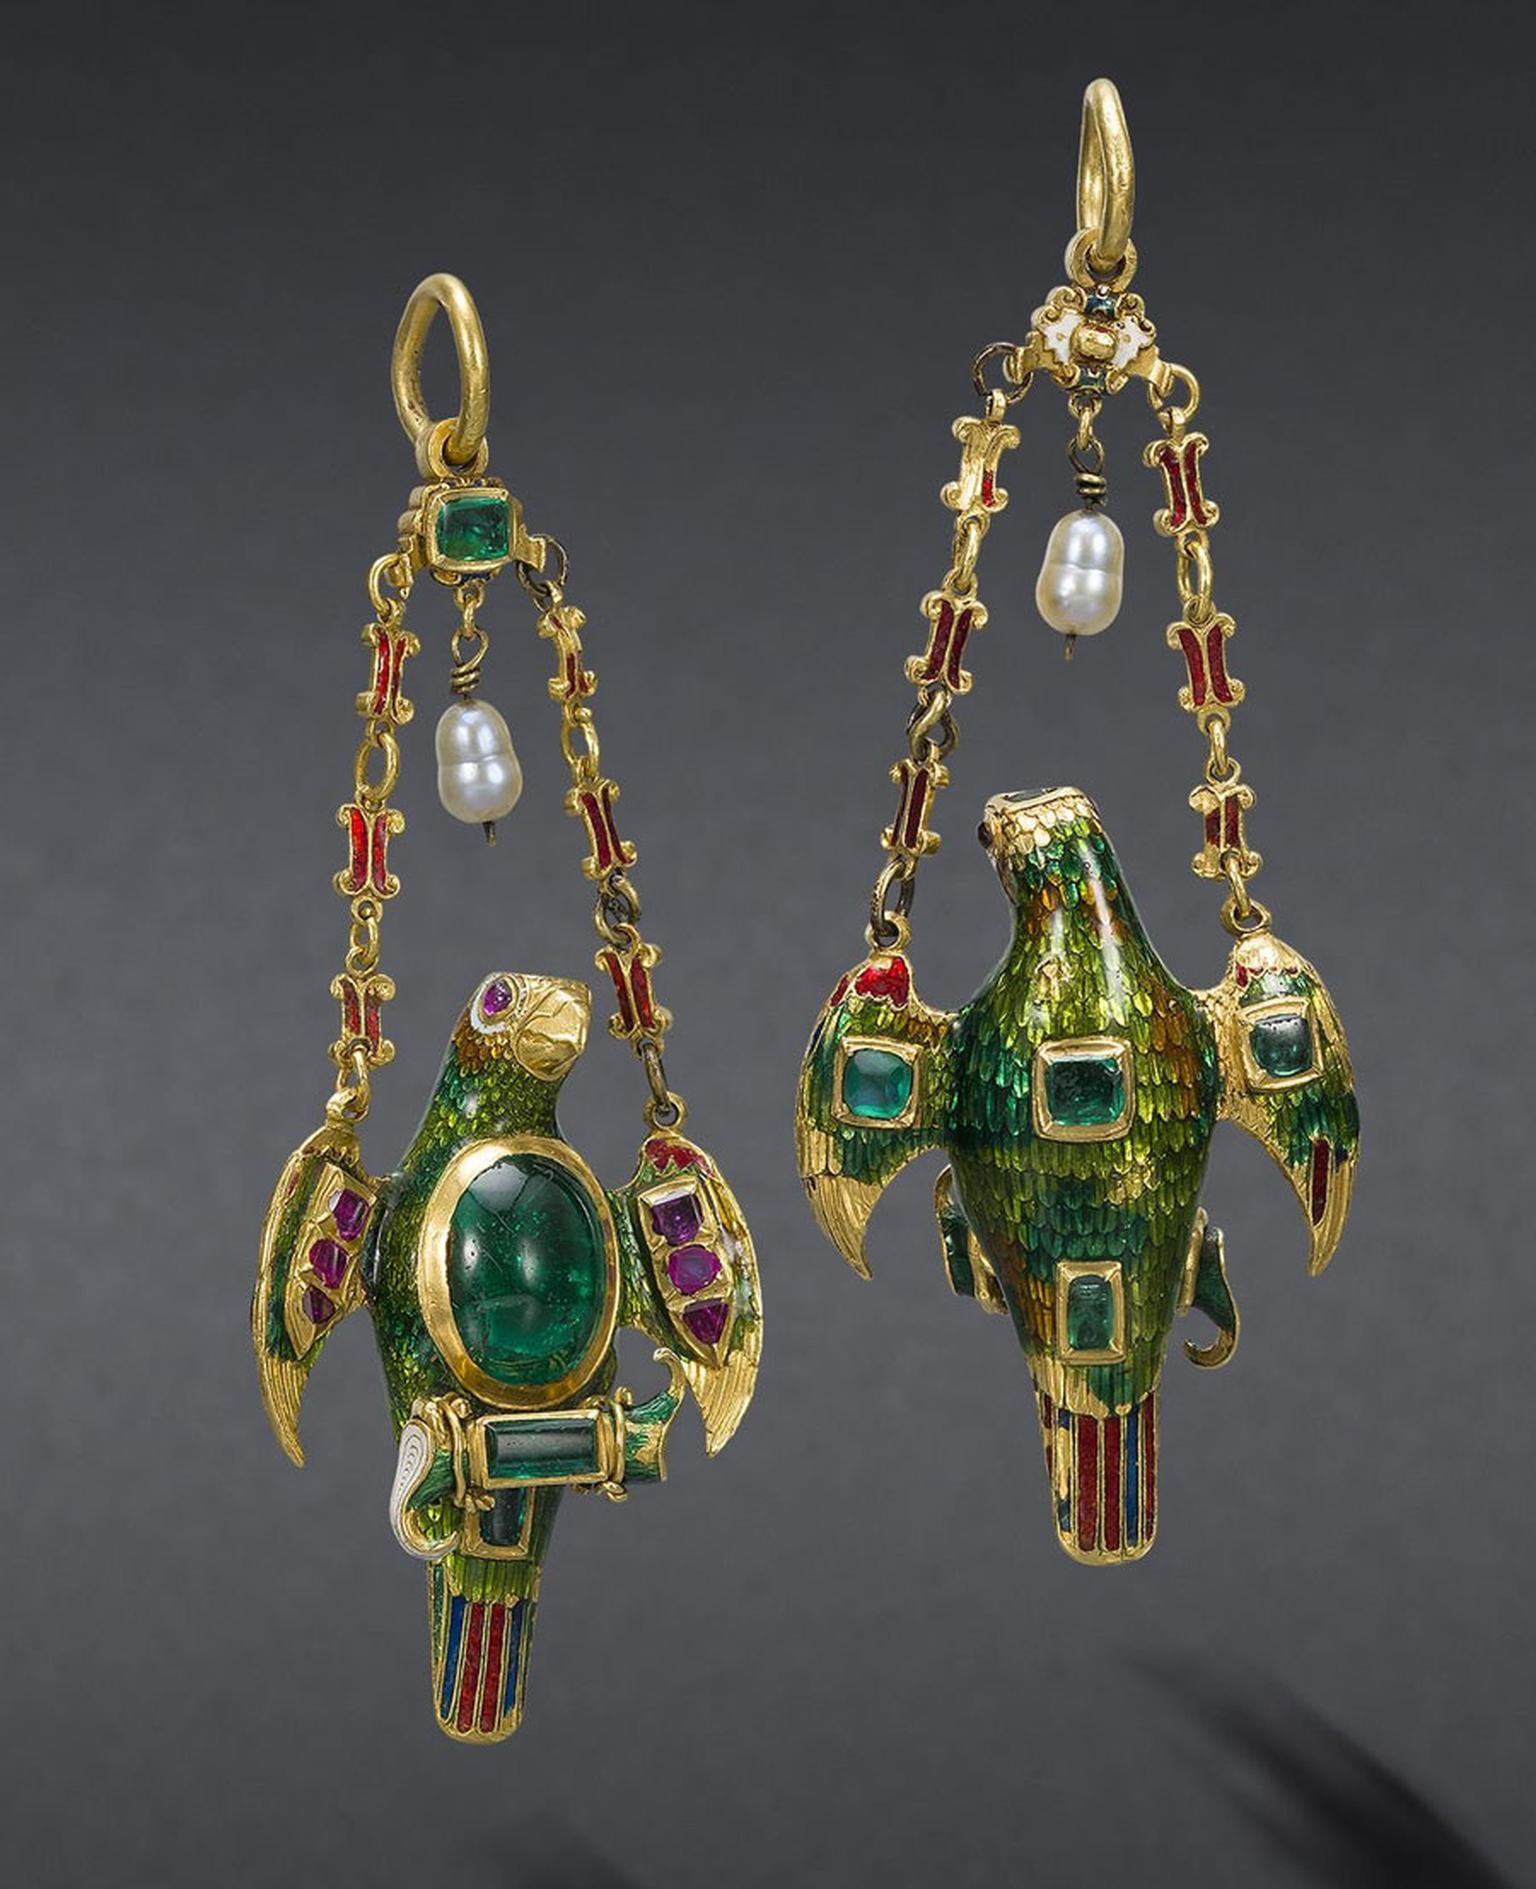 Bonhams-A-Spanish-Colonial-gold-enamel-and-gem-set-pendant